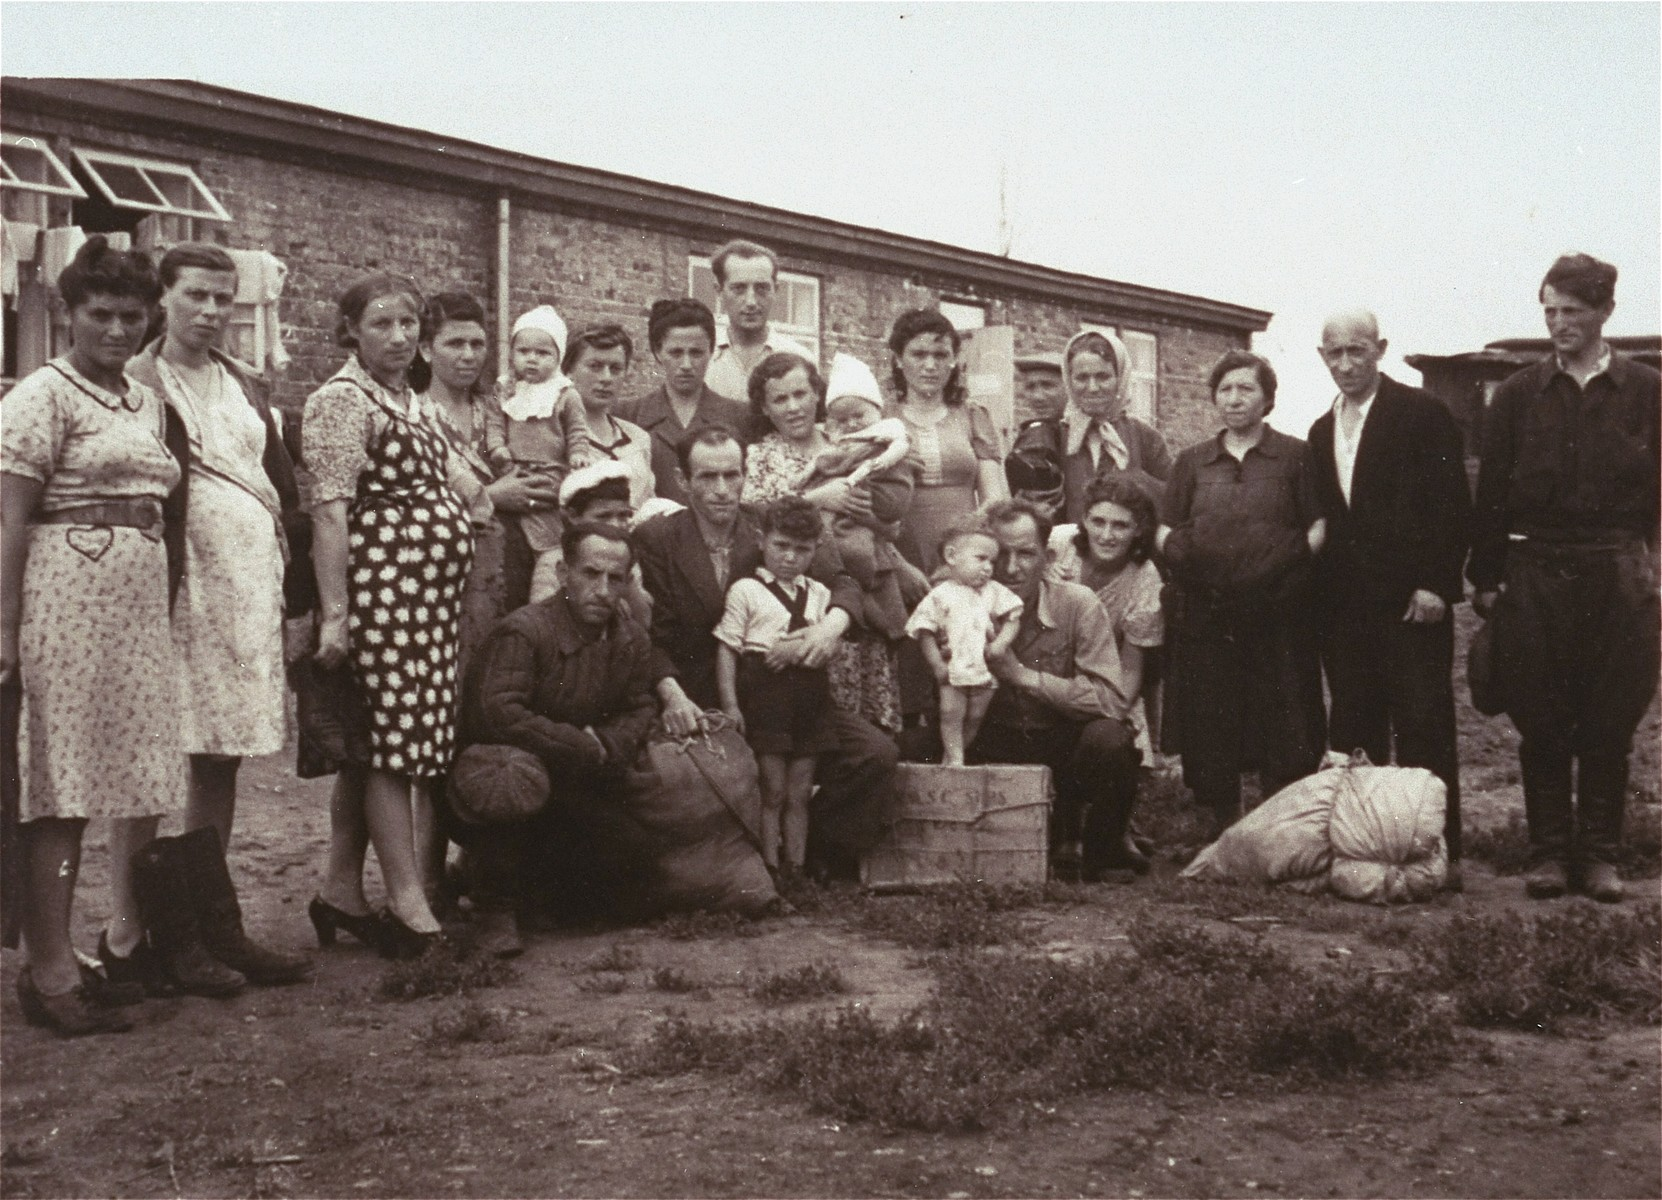 Portait of the first group of DPs to arrive at the Zeilsheim displaced persons' camp.